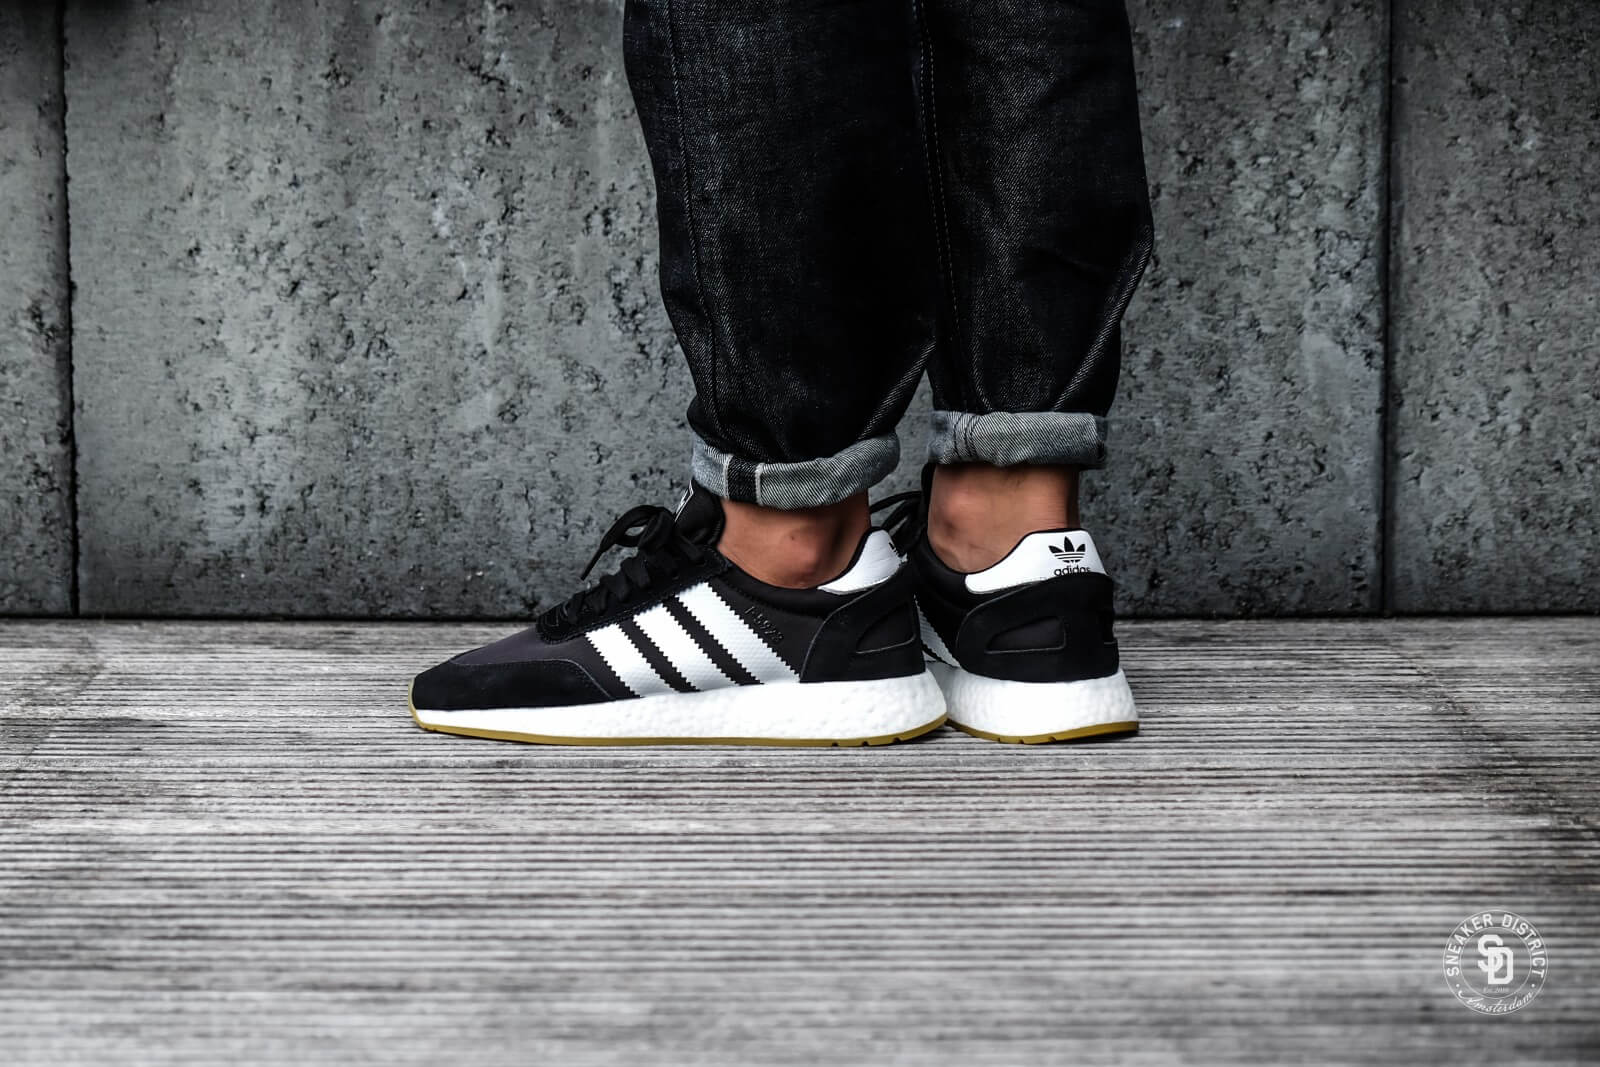 Adidas I-5923 Black/White/Gum